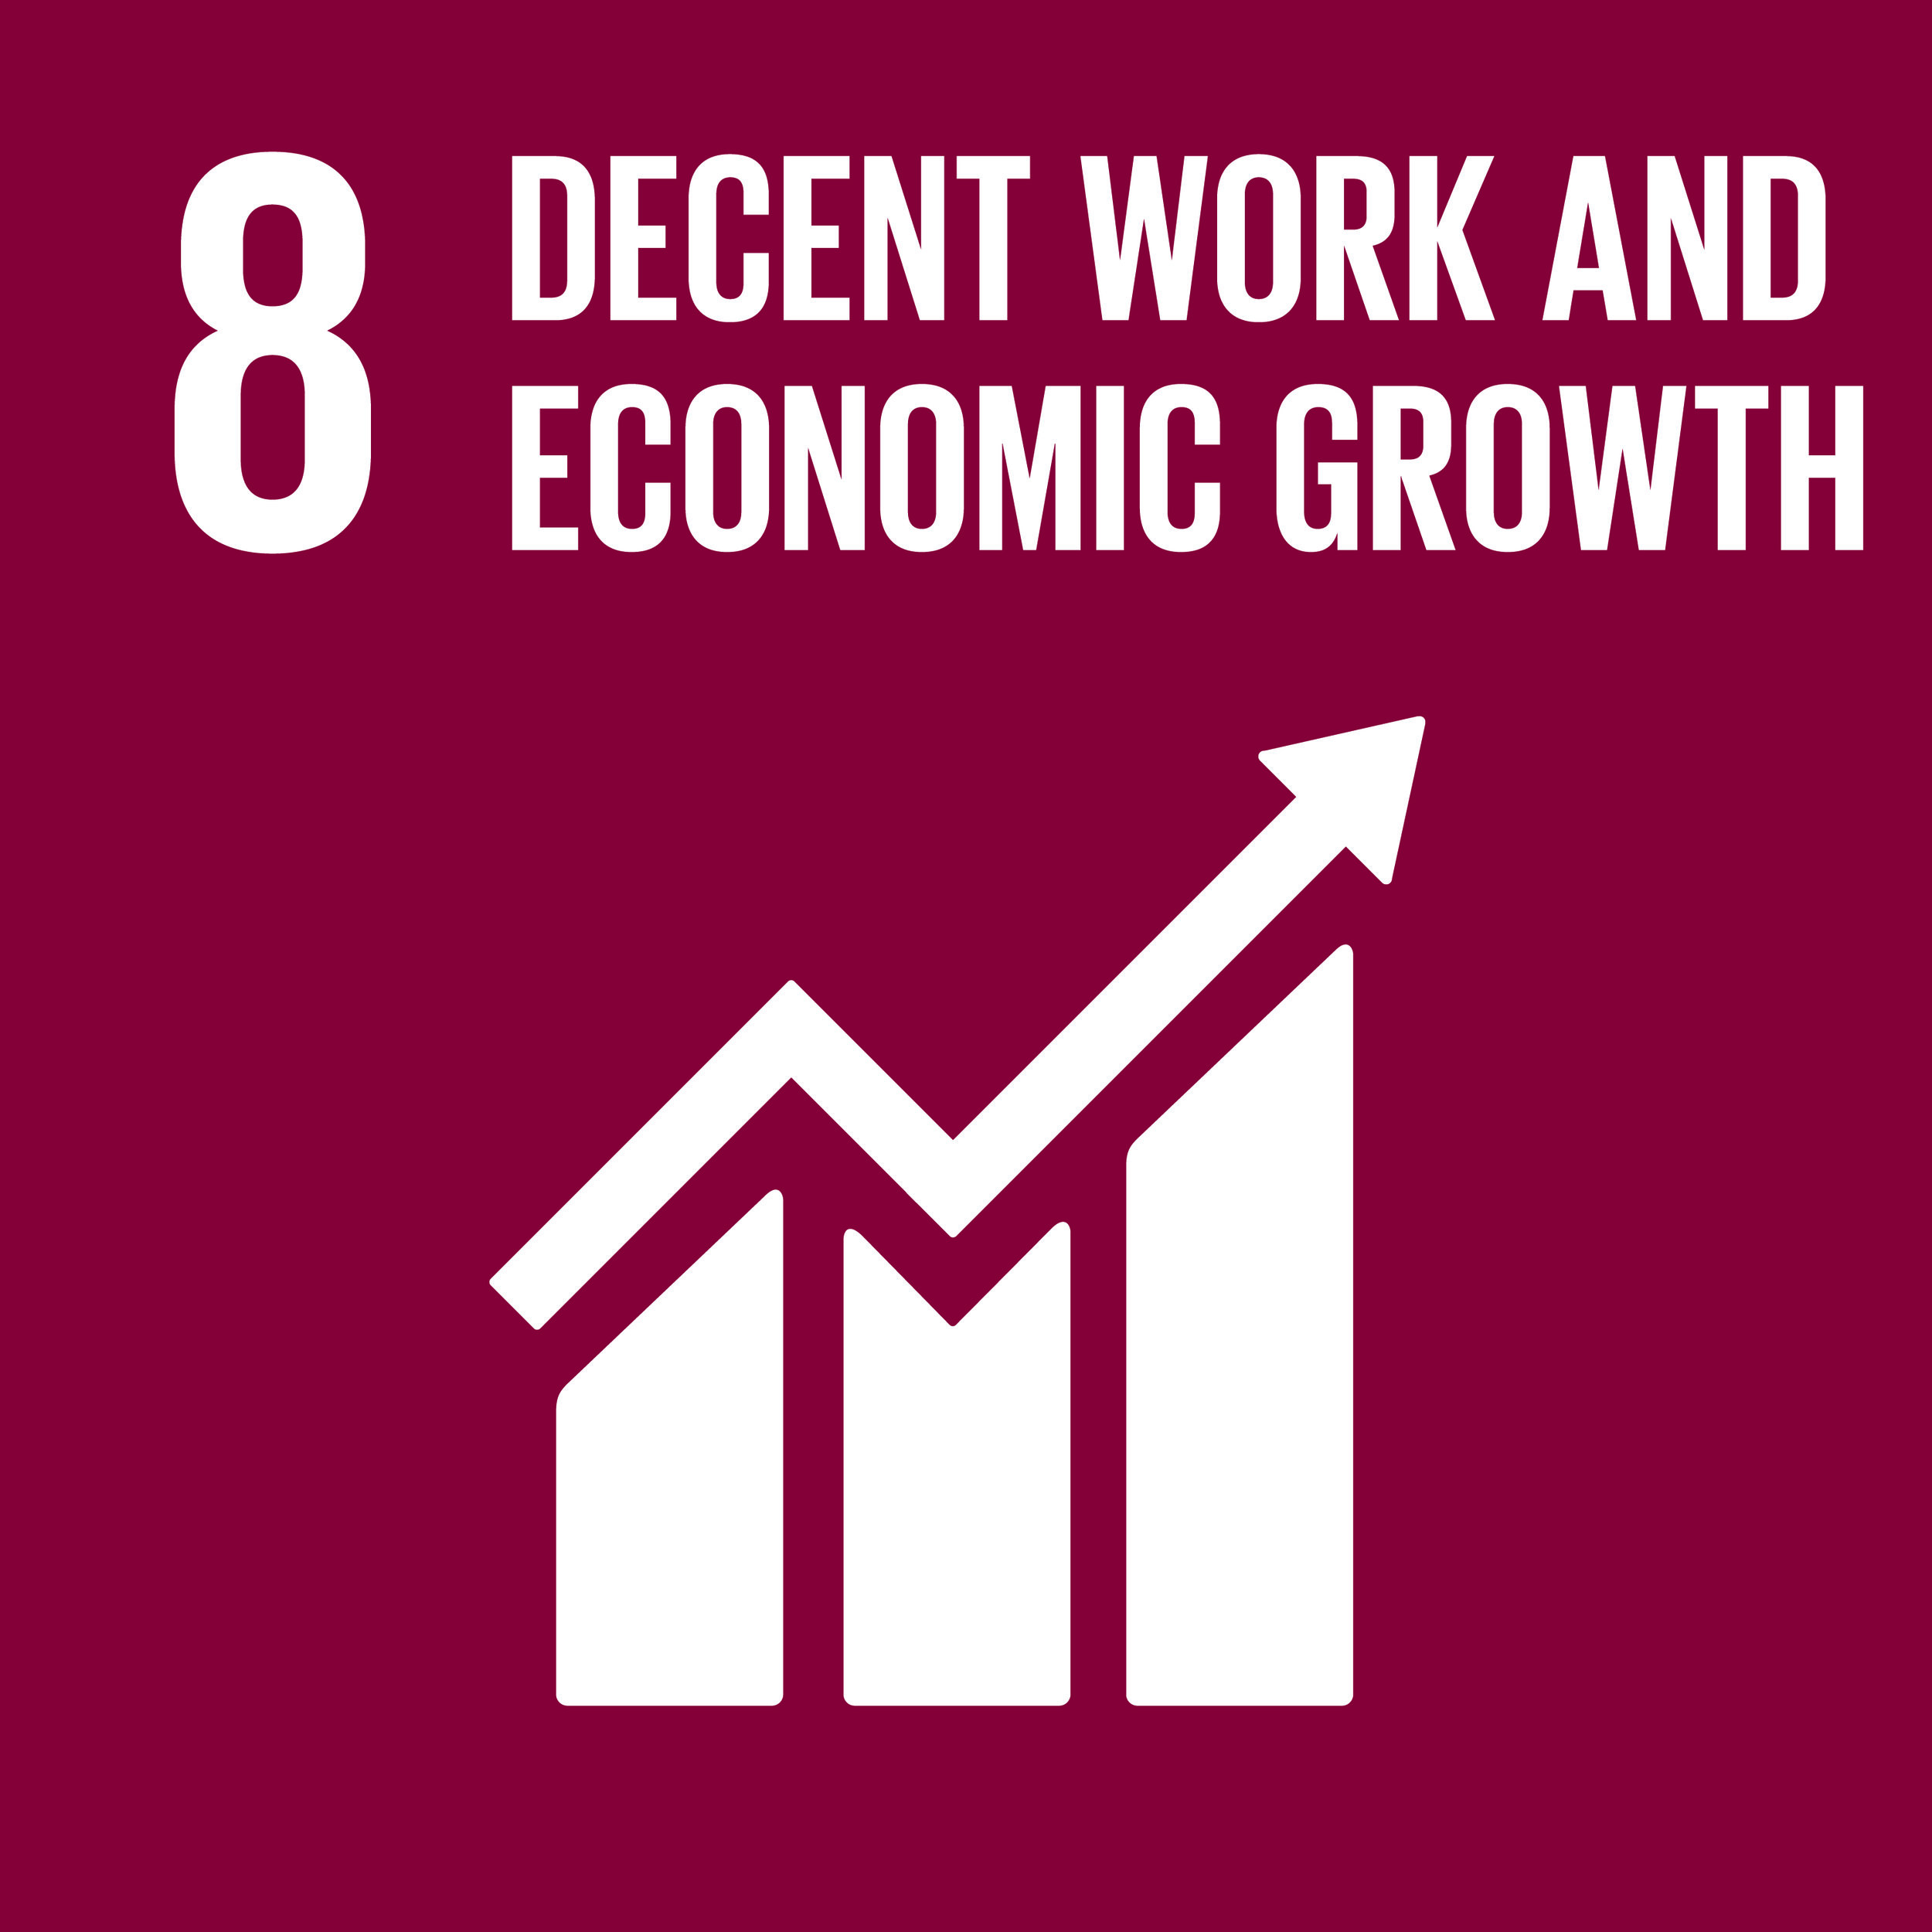 Sustainable Development Goals 8